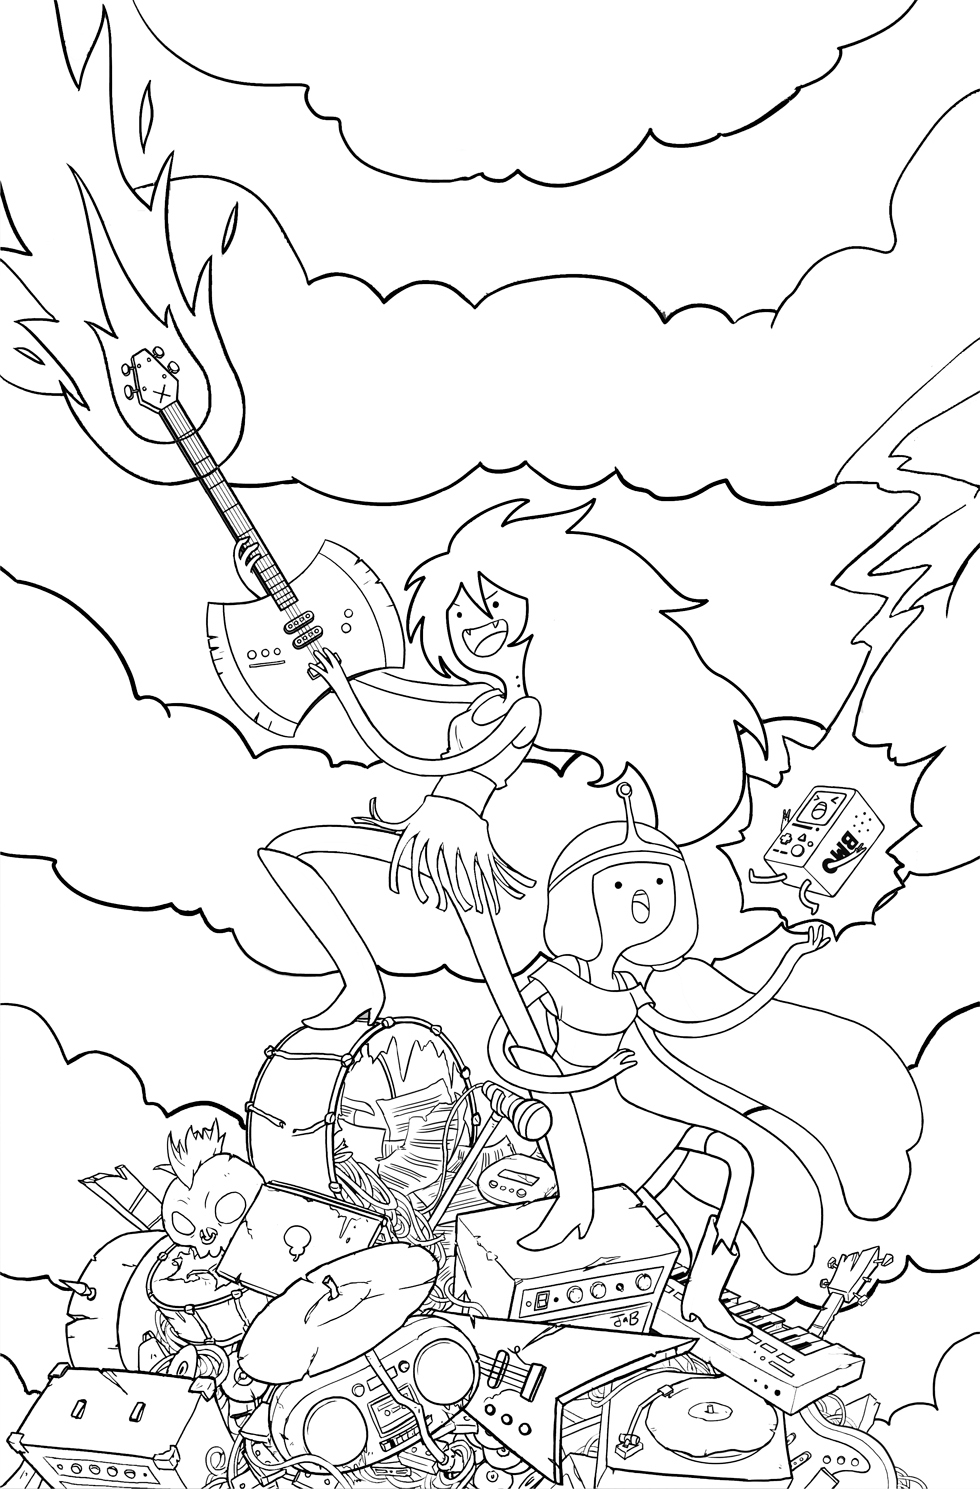 free printout coloring pages | Adventure Time Coloring Pages - Best Coloring Pages For Kids